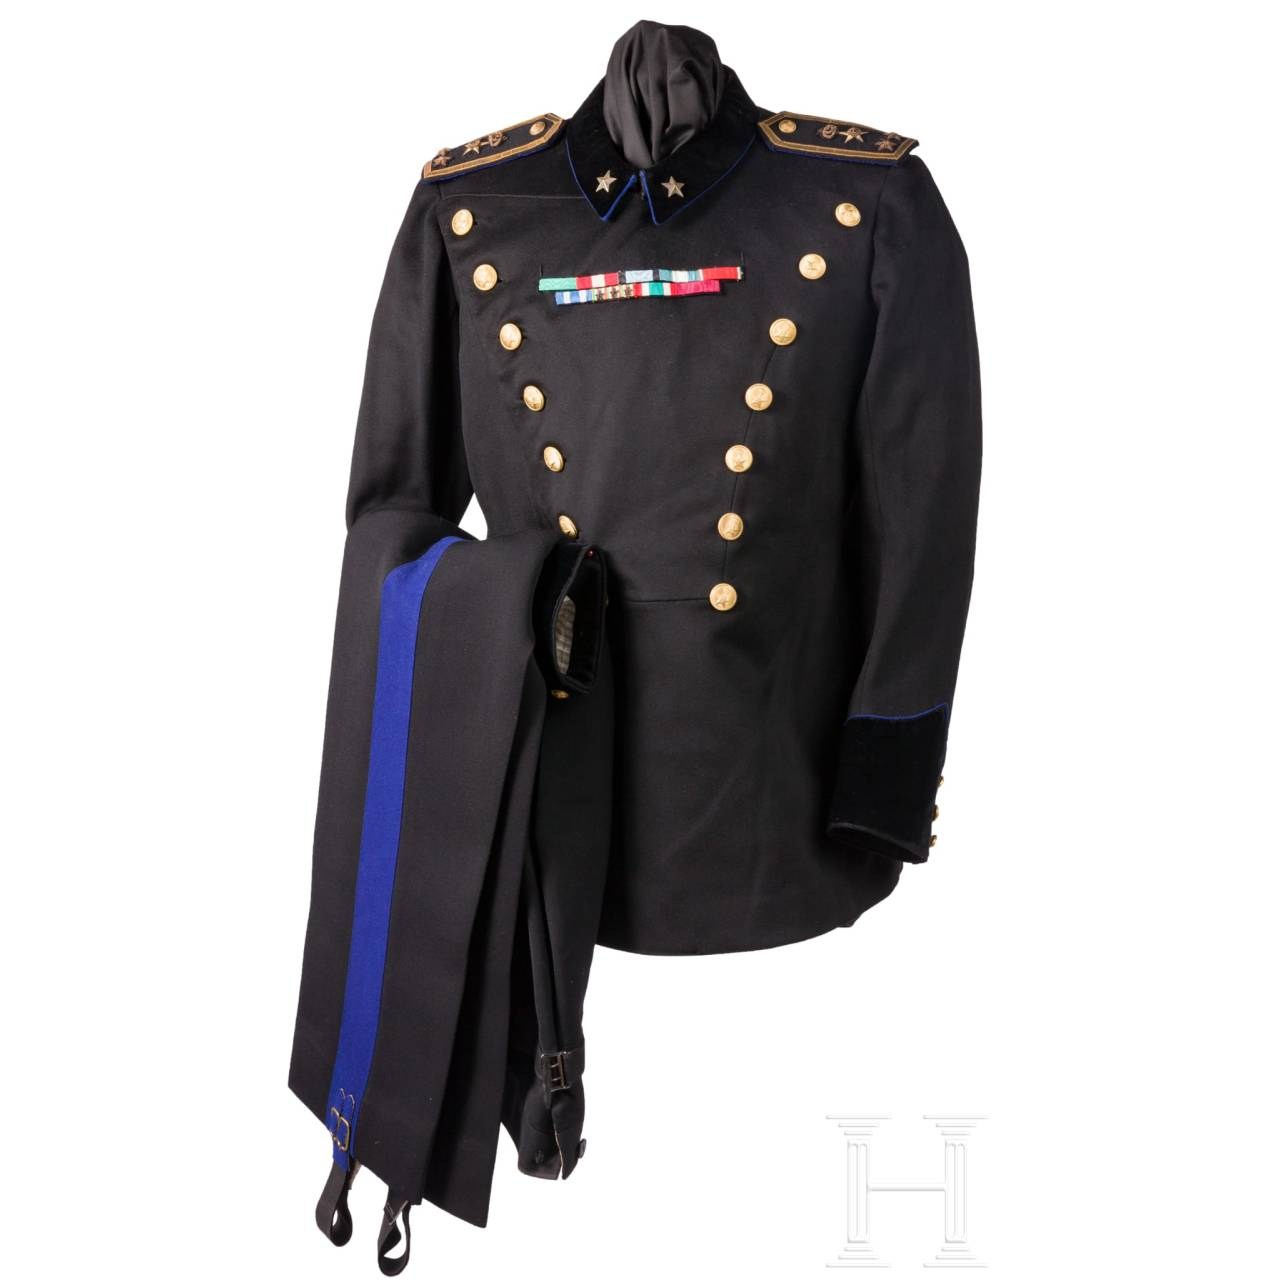 A black uniform for officers of the supply troops, before 1945